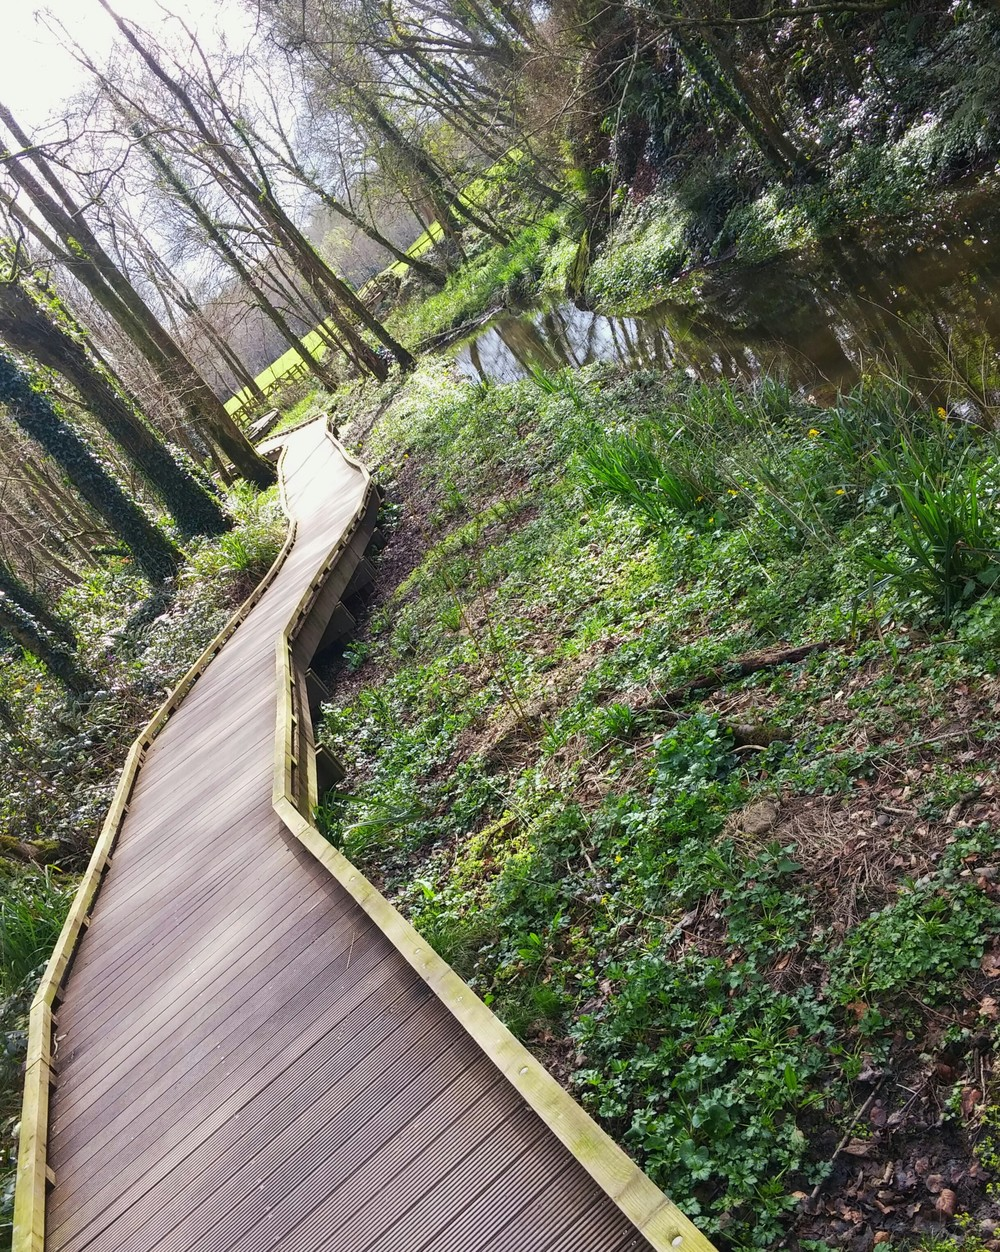 These floating boardwalks take travelers all throughout the grounds of Blarney Castle. It led me to ancient superstitious landmarks such as the Wishing Steps, the Witch's Kitchen, the Druid's Circle, and a number of sacred Celtic altars.